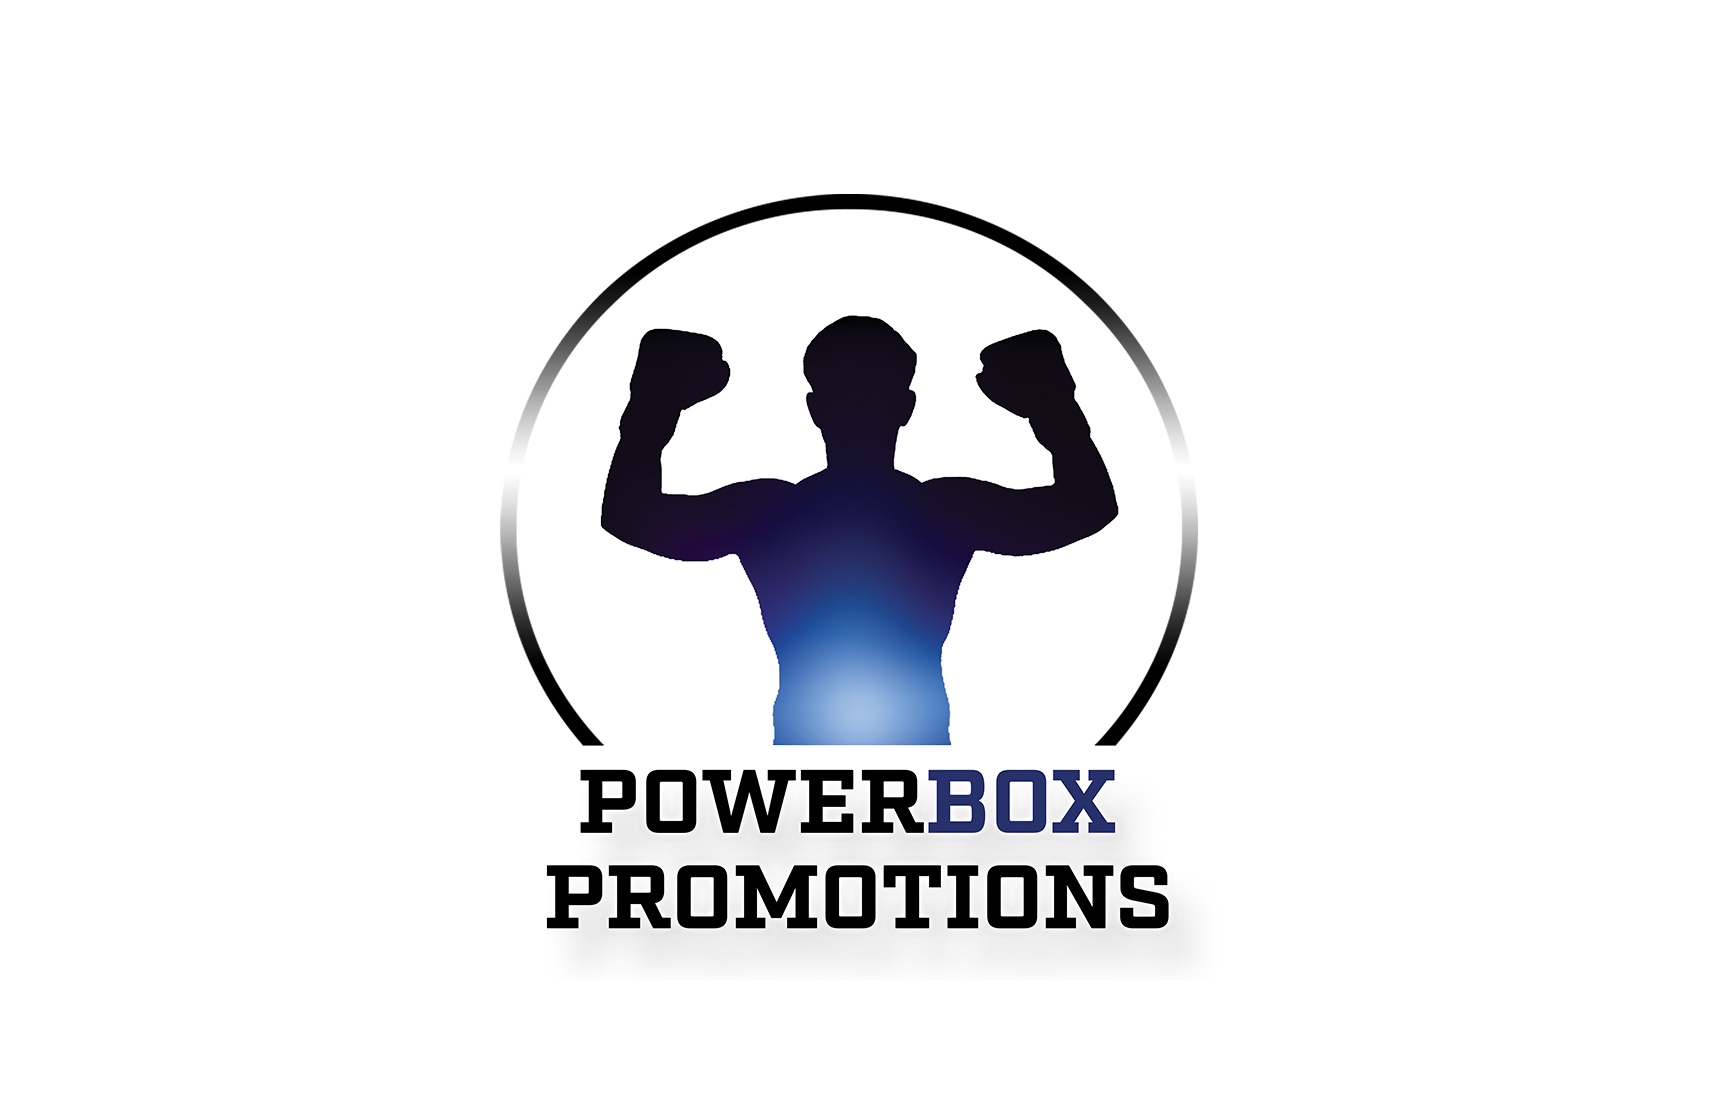 What Is Powerbox?